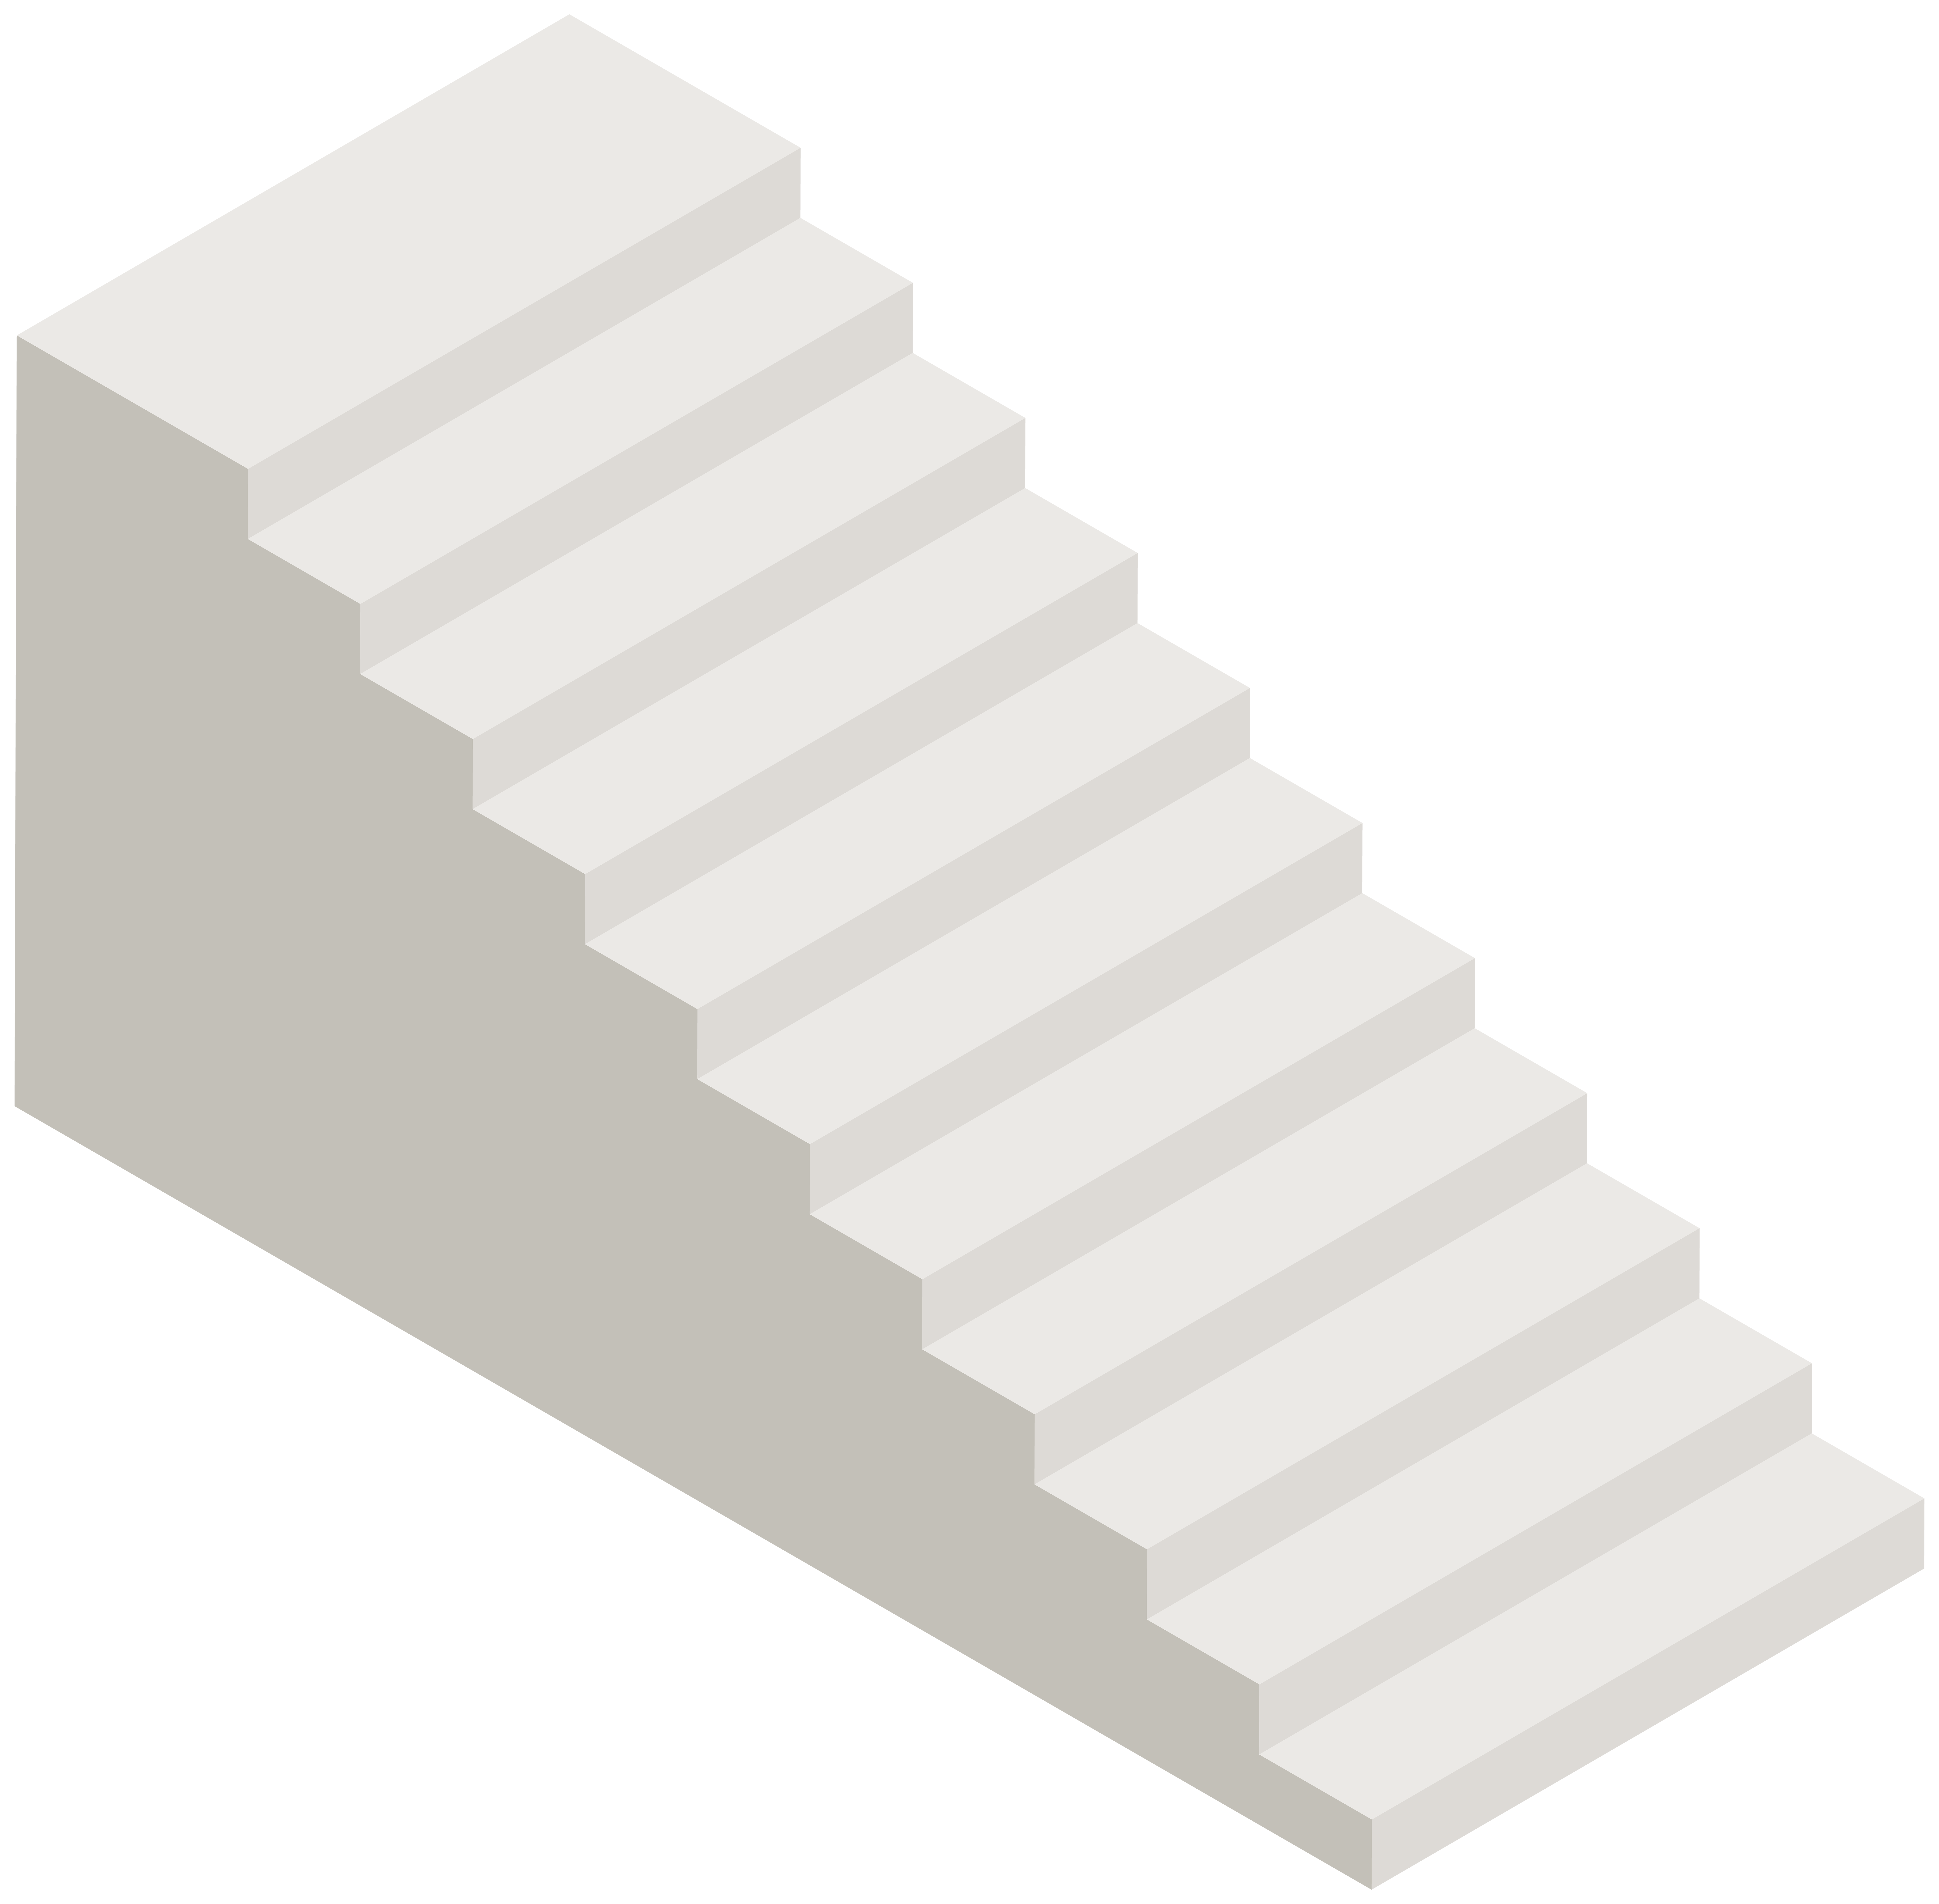 Stairs png clip art. Staircase clipart christmas